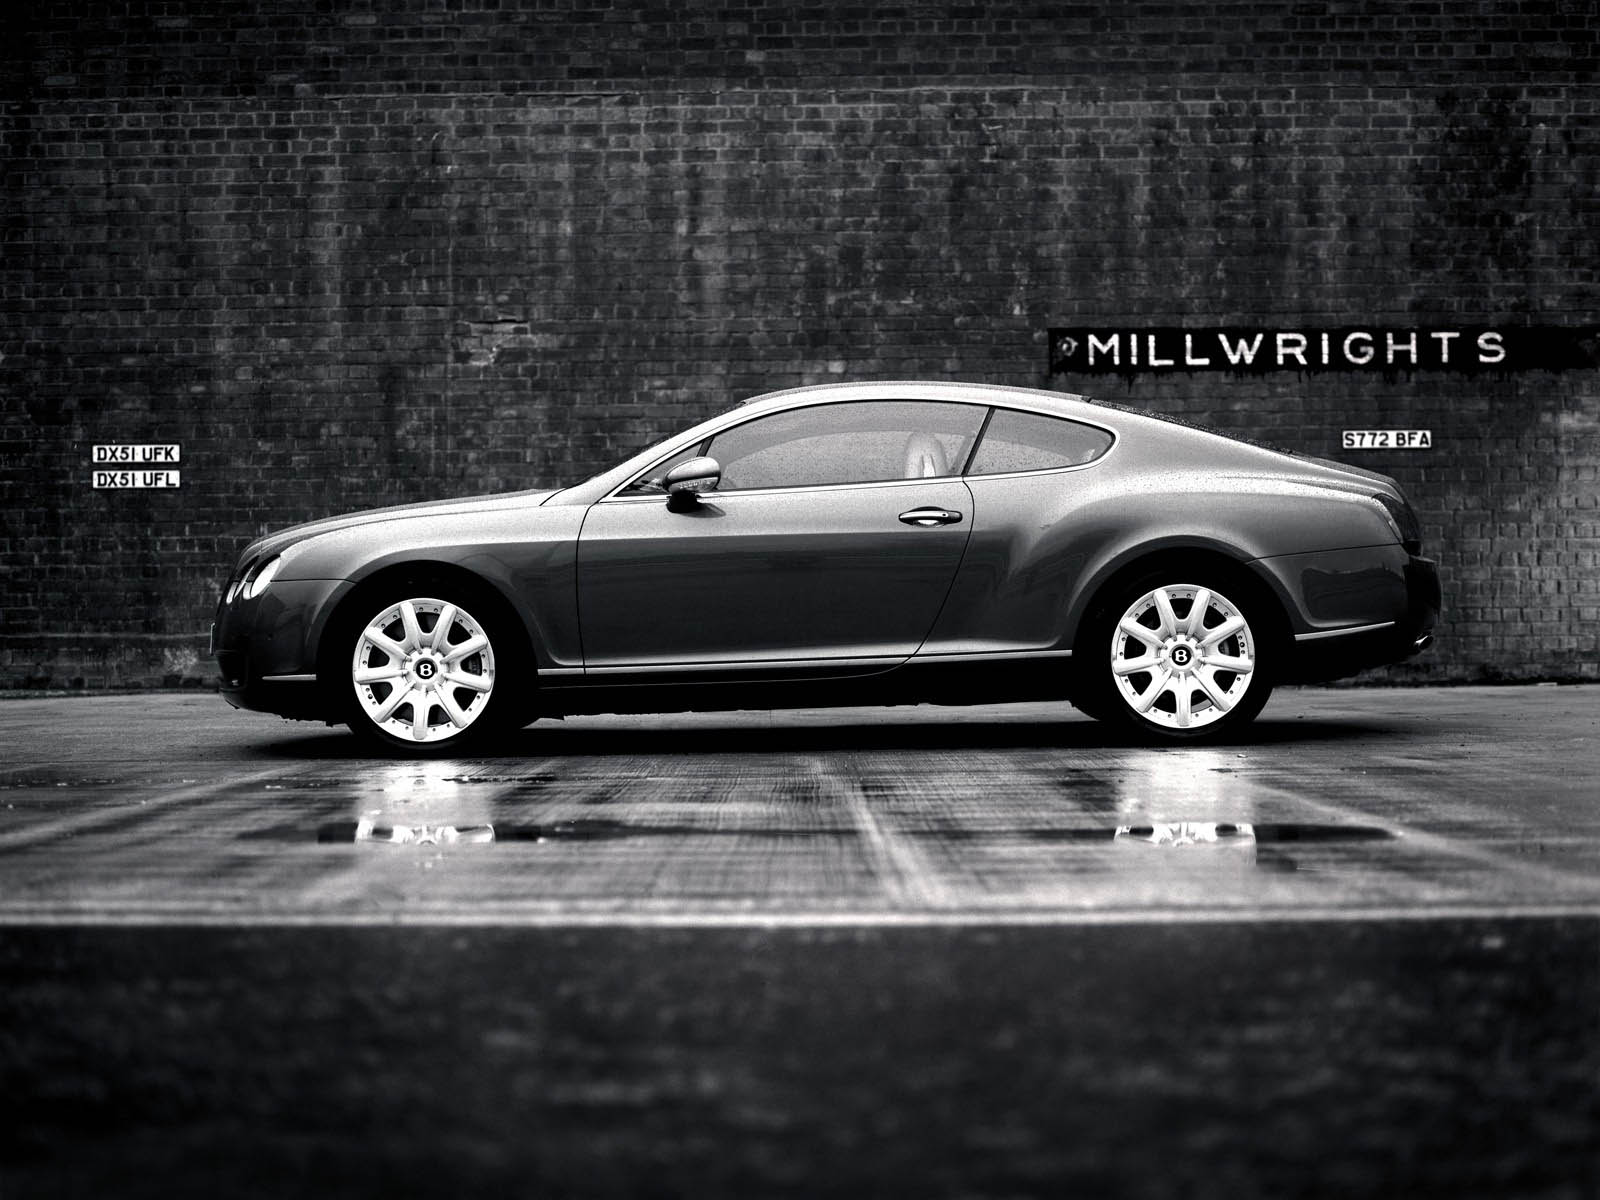 Exterieur_Bentley-Continental-GT_25